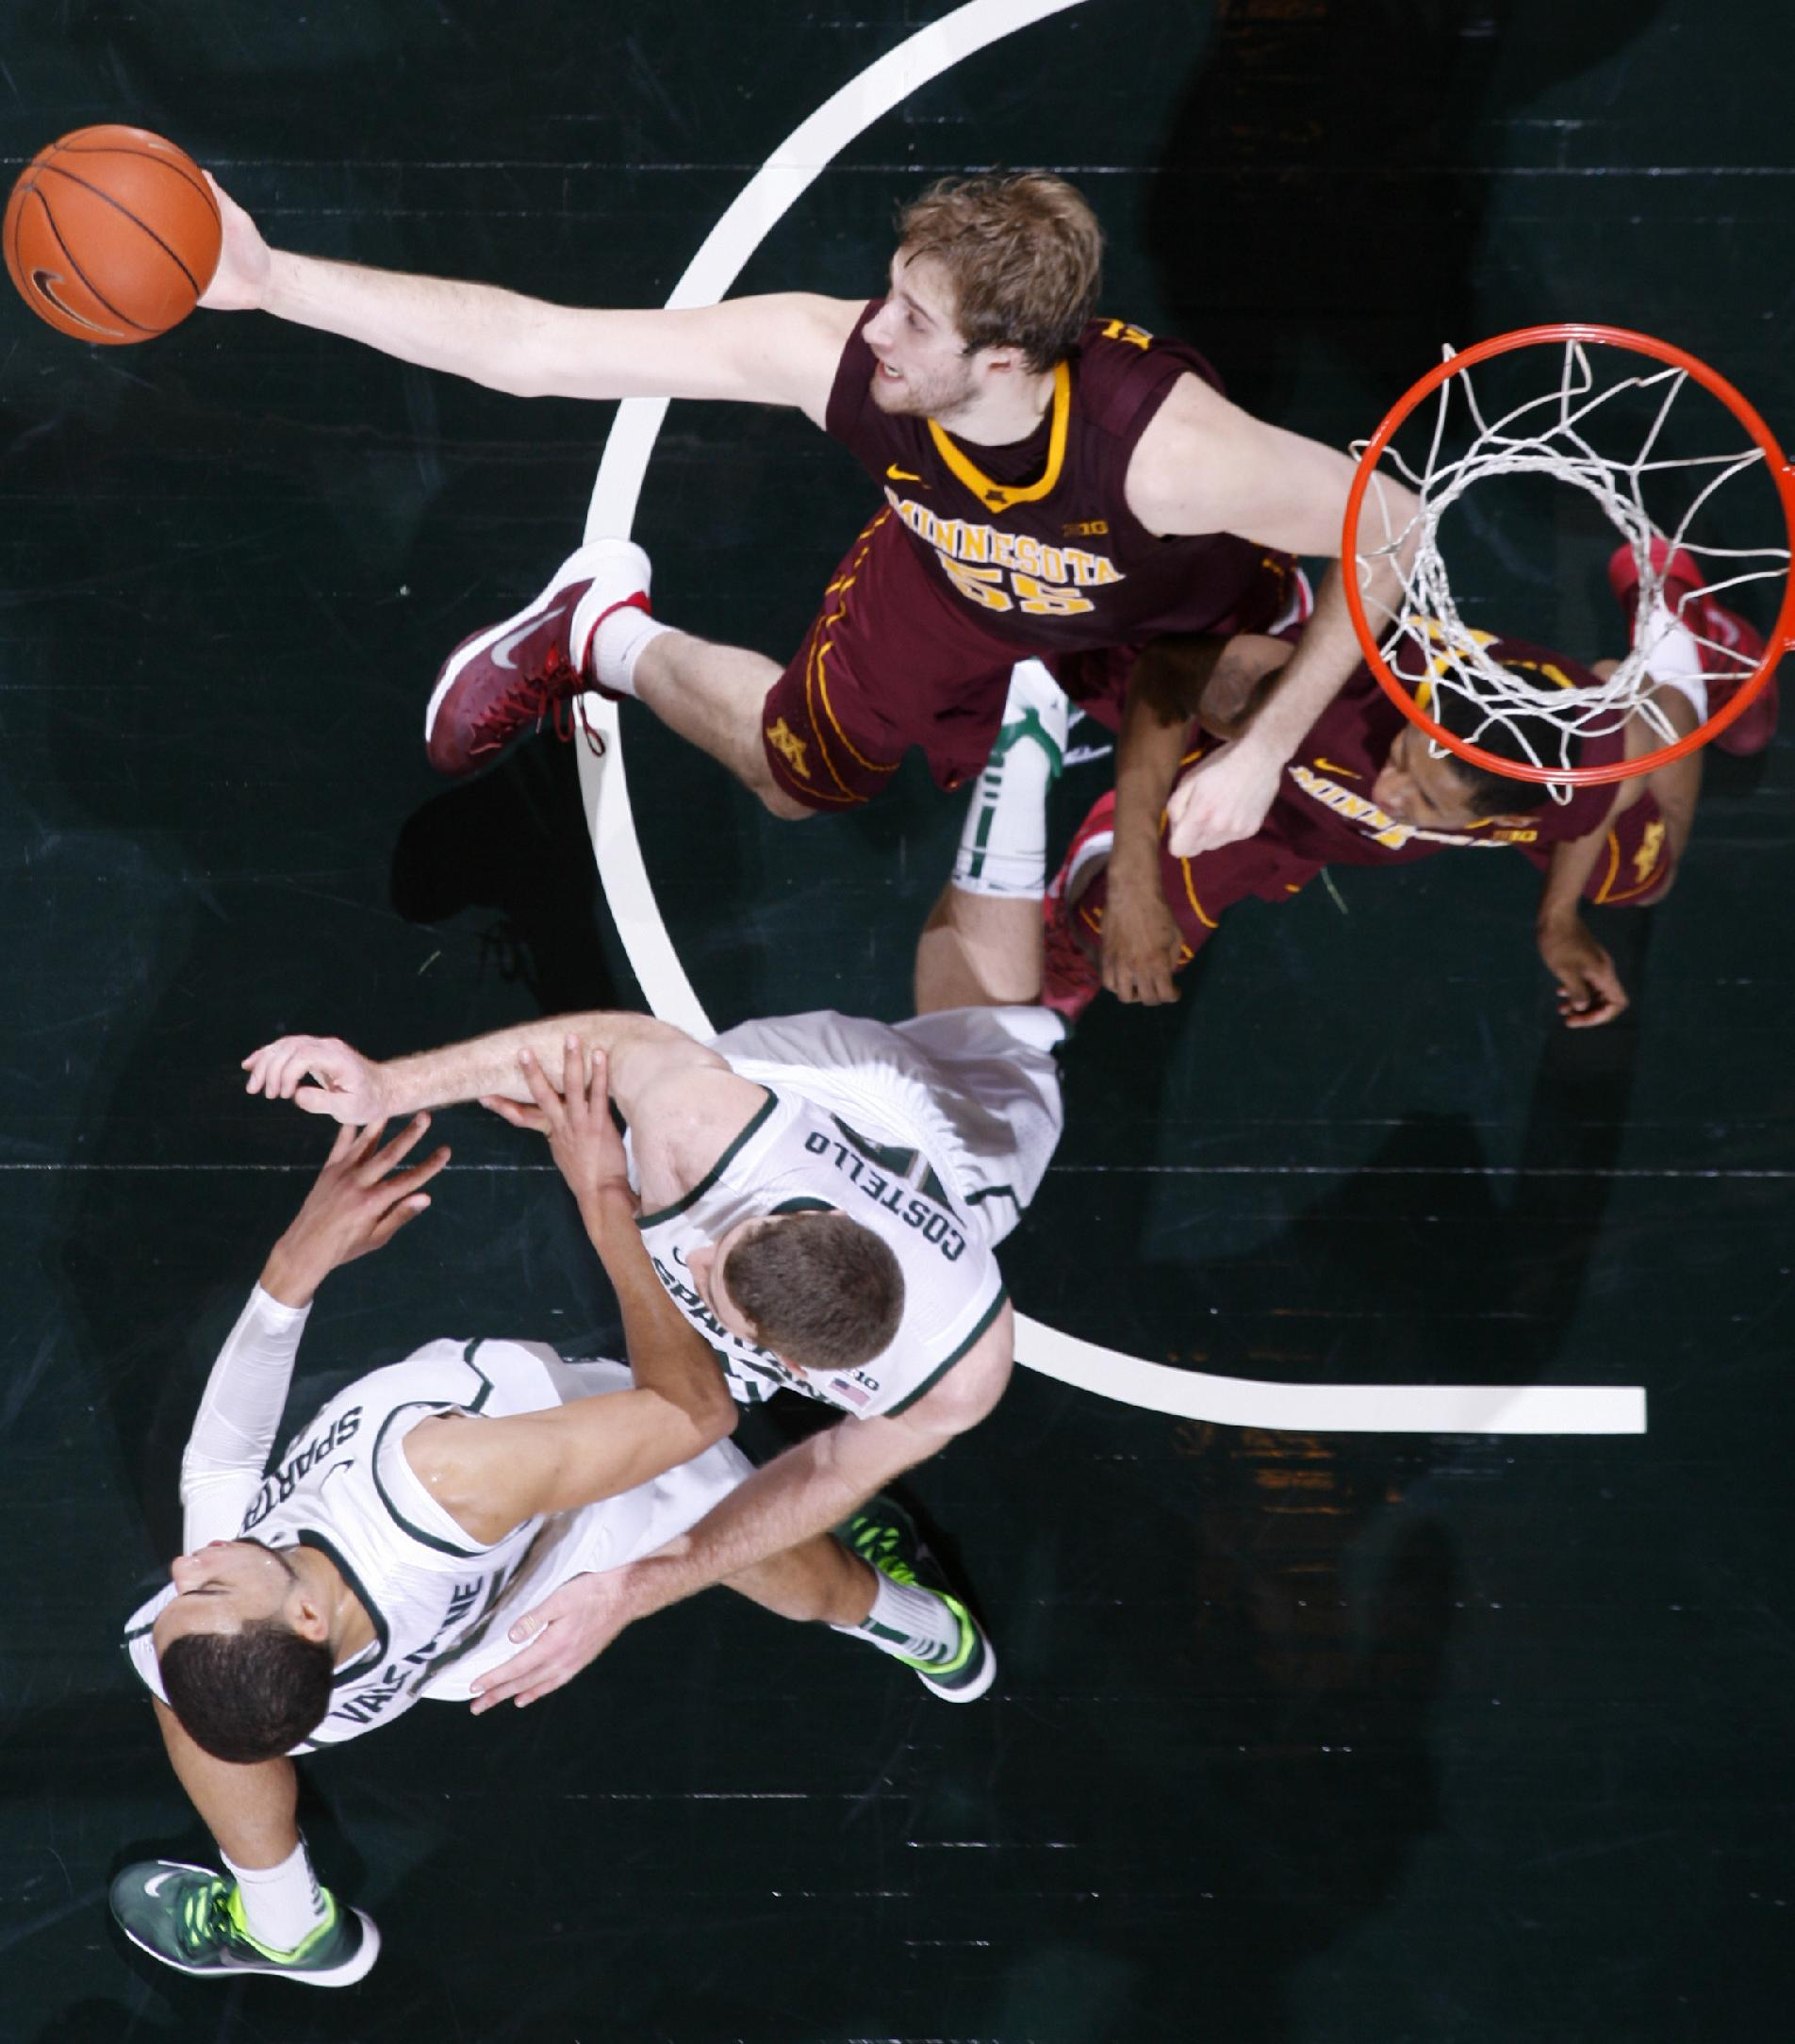 Minnesota's Elliot Eliason, top, pulls in a rebound against Michigan State's Matt Costello, center, and Denzel Valentine, bottom, during the second half of an NCAA college basketball game, Saturday, Jan. 11, 2014, in East Lansing, Mich. Michigan State won 87-75 in overtime